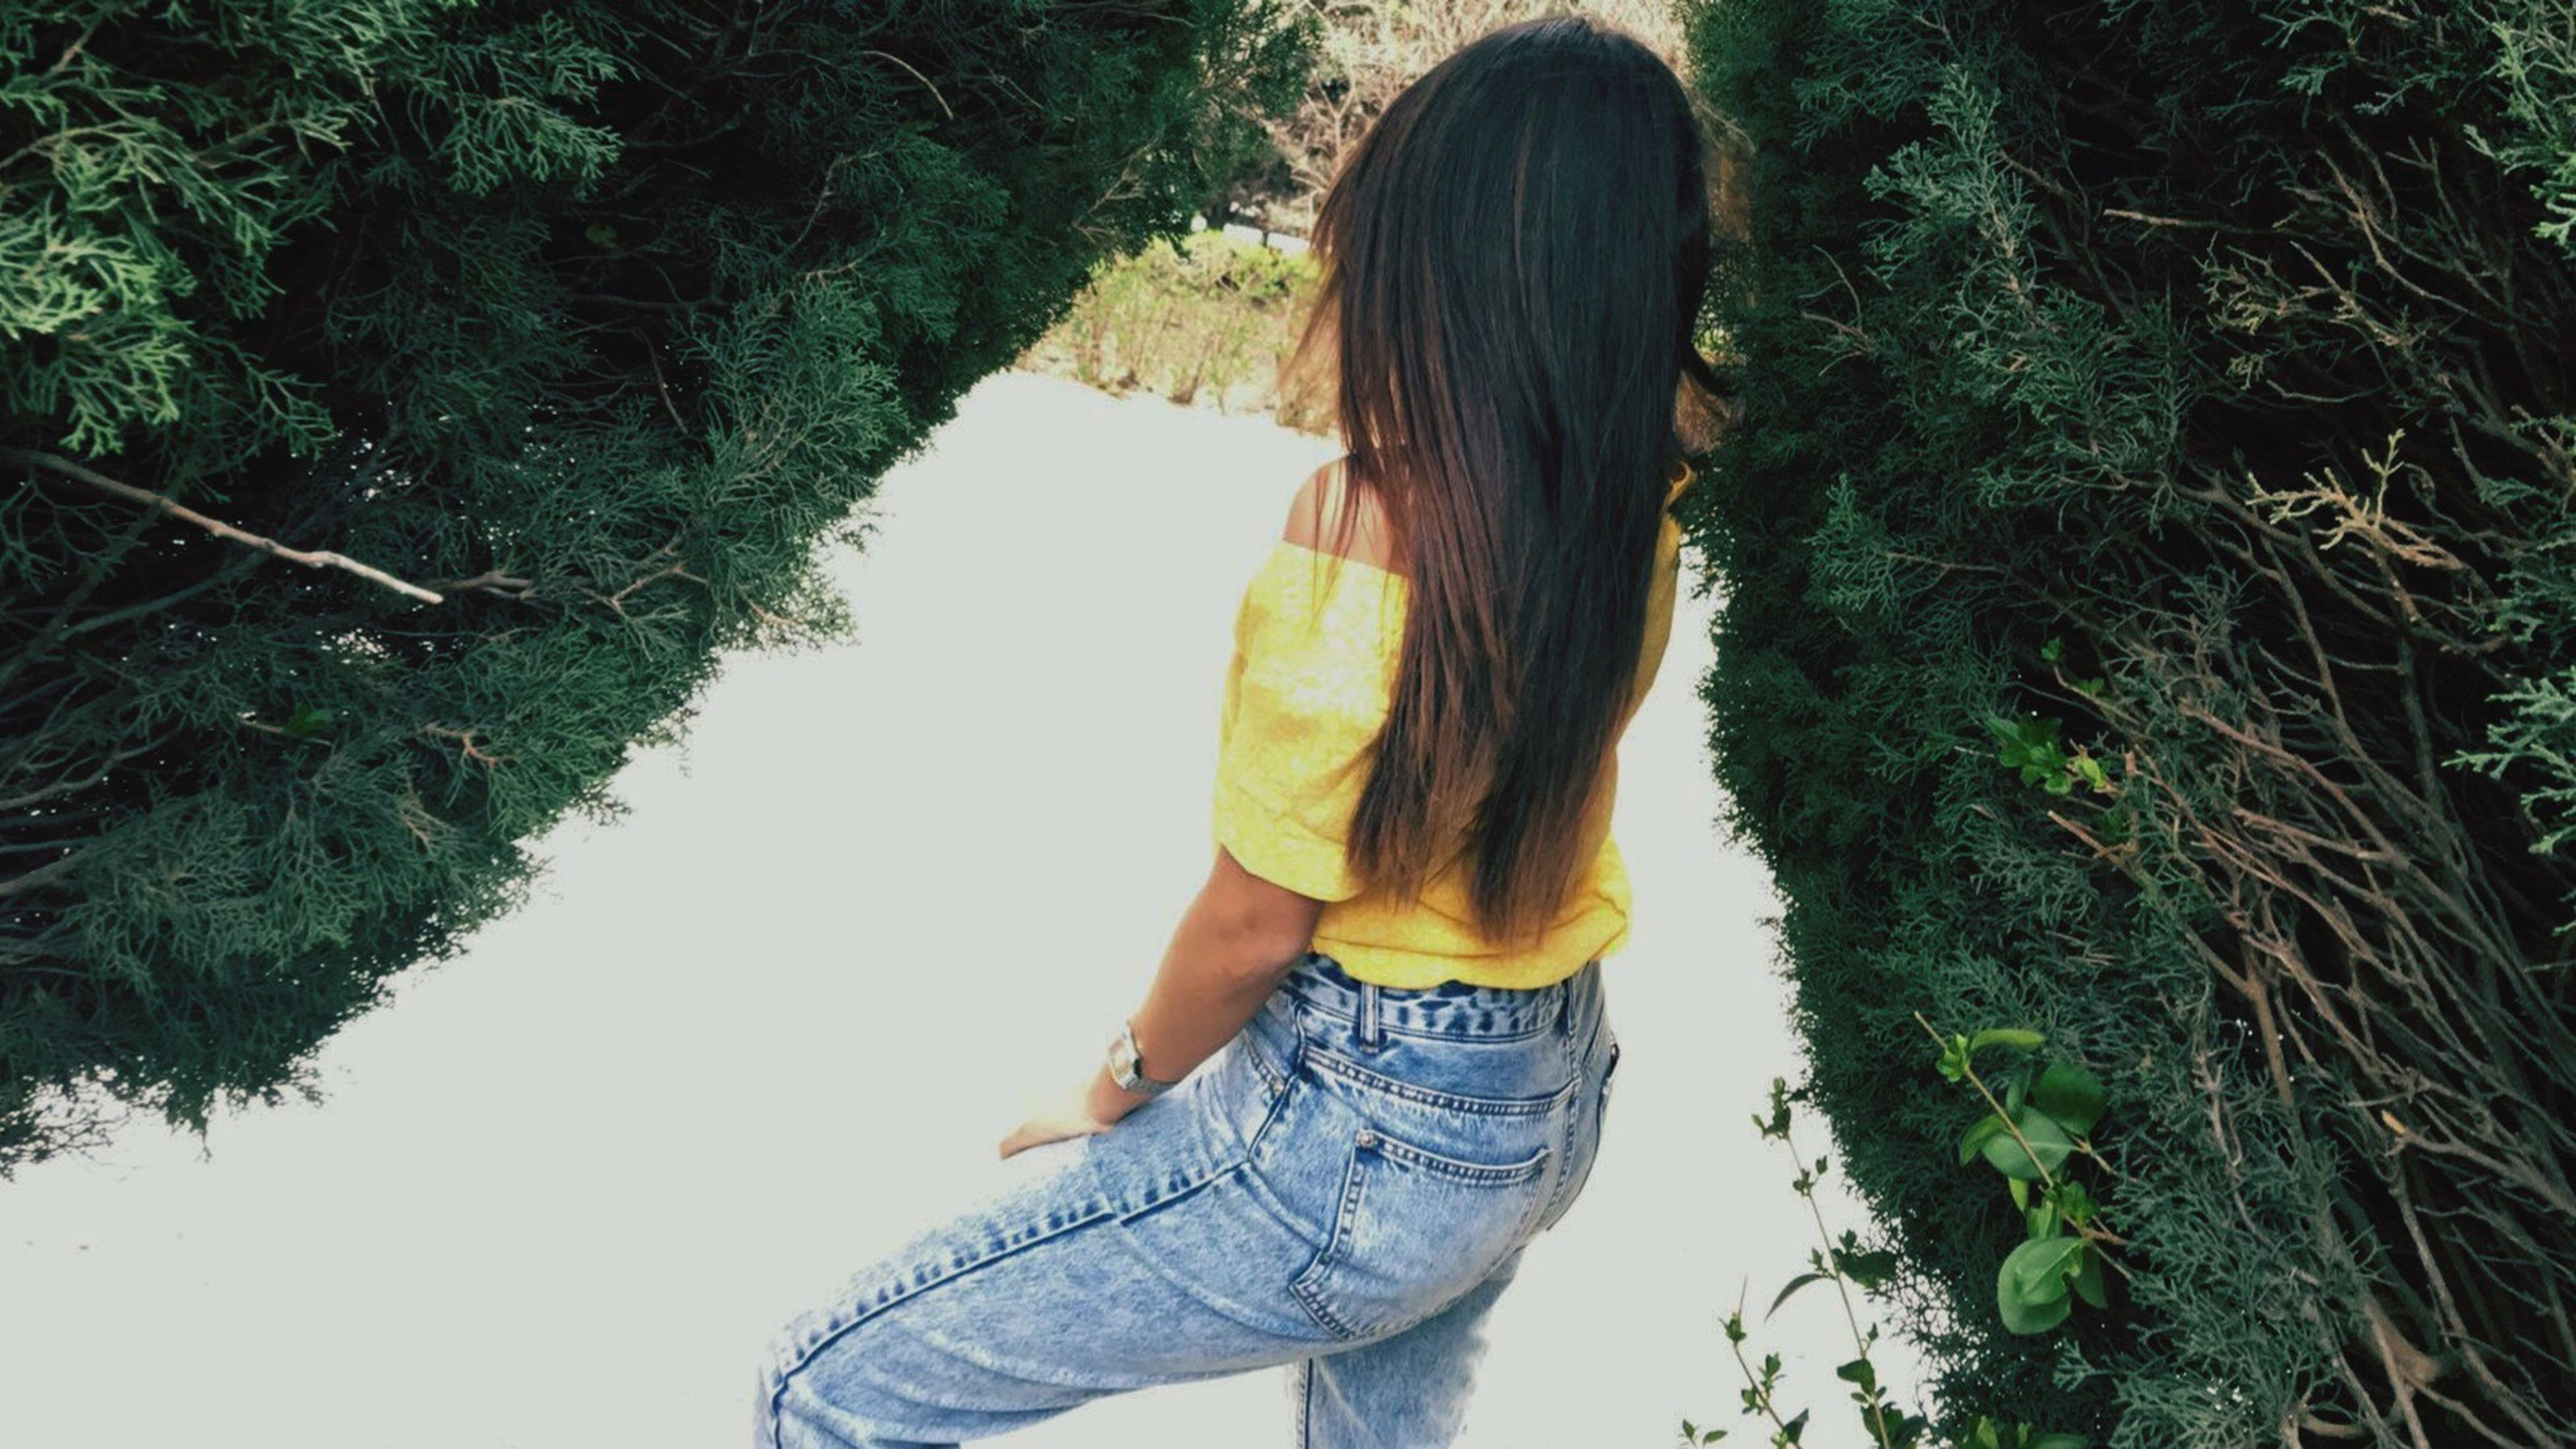 lifestyles, leisure activity, long hair, rear view, tree, person, standing, casual clothing, young women, young adult, three quarter length, waist up, water, day, nature, outdoors, full length, side view